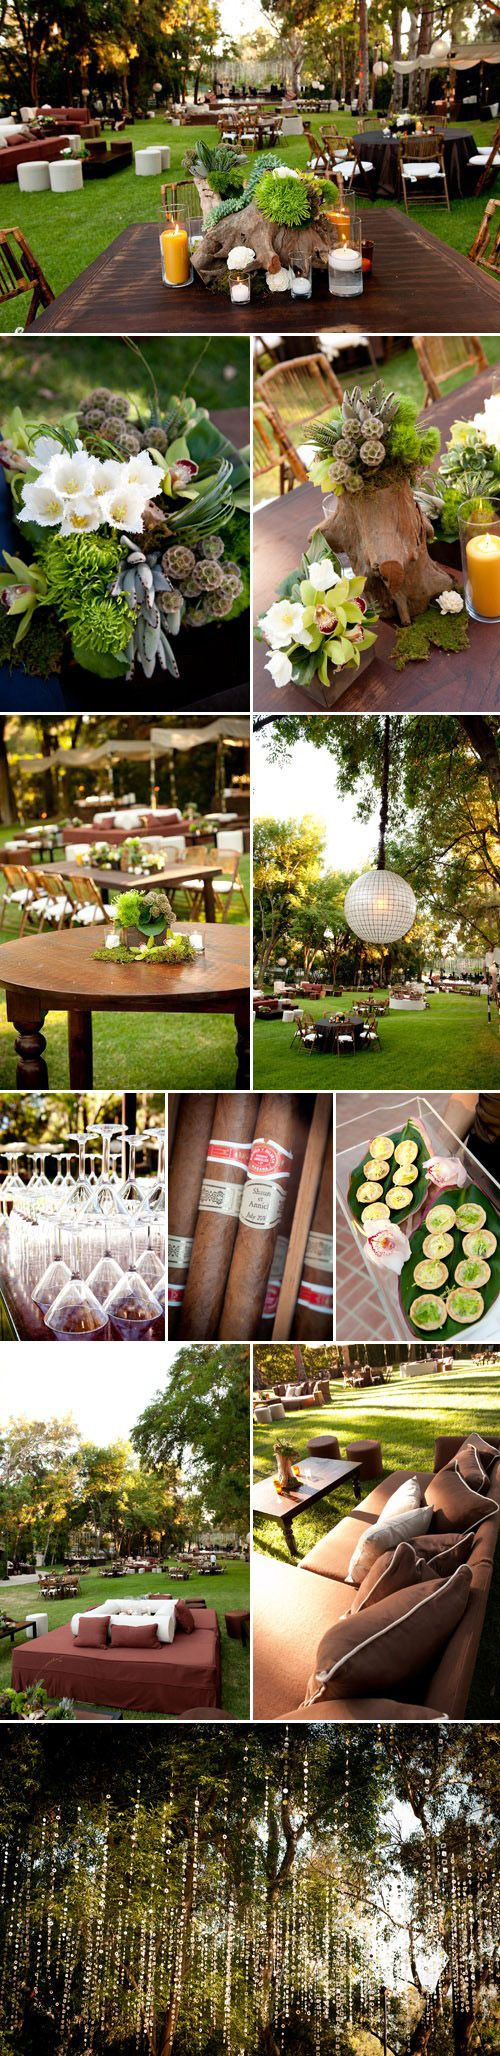 Best tropical wedding images on pinterest table decorations